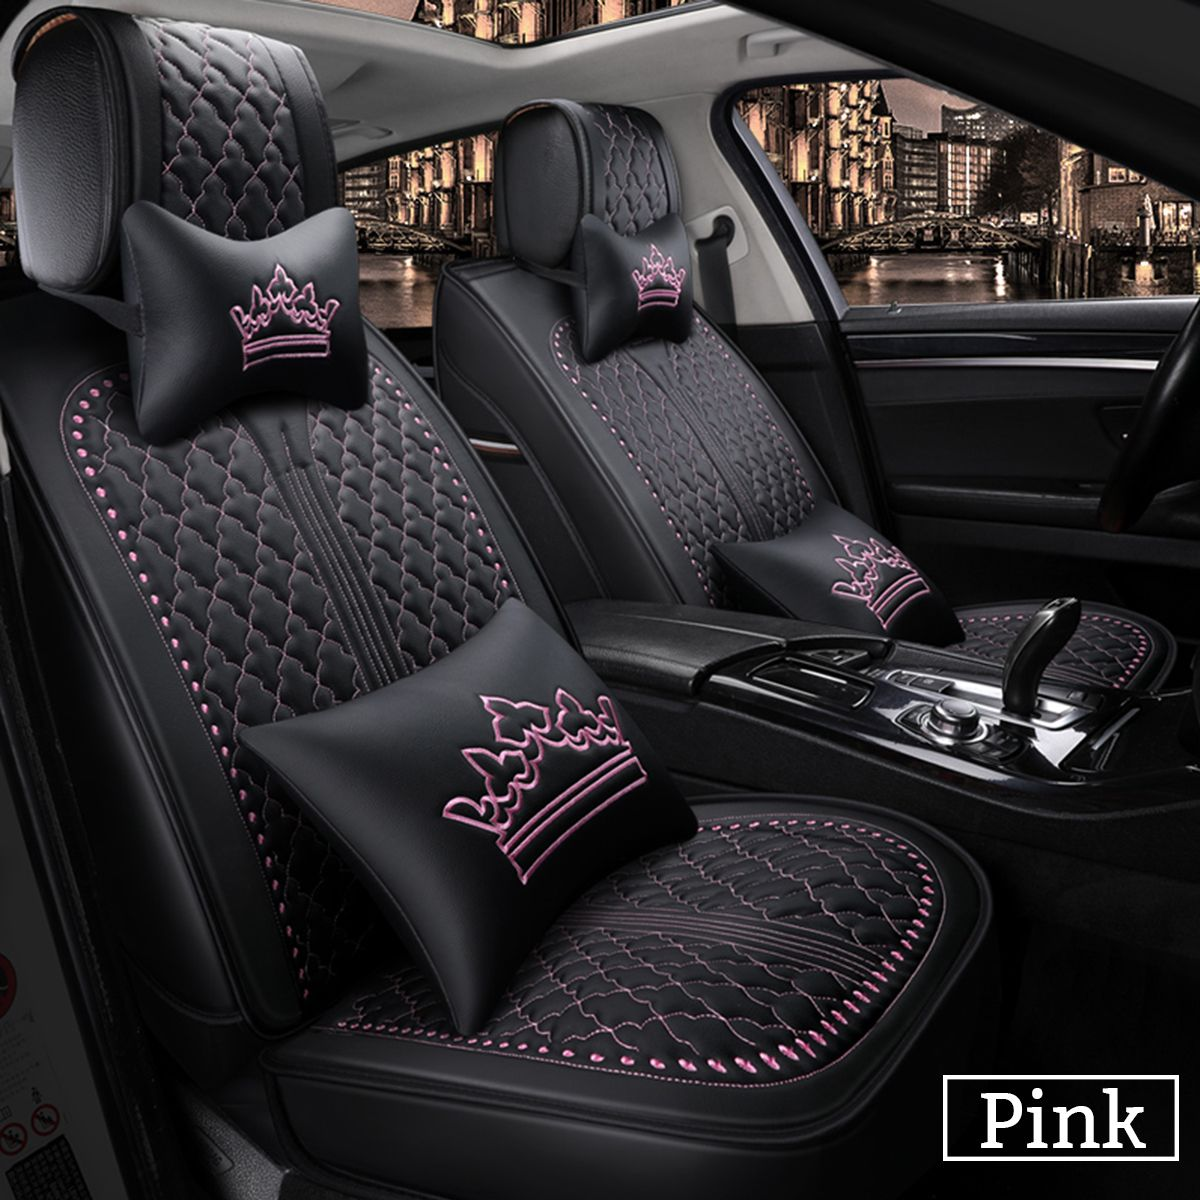 Auto Tires In 2020 Leather Car Seat Covers Car Seats Leather Car Seats